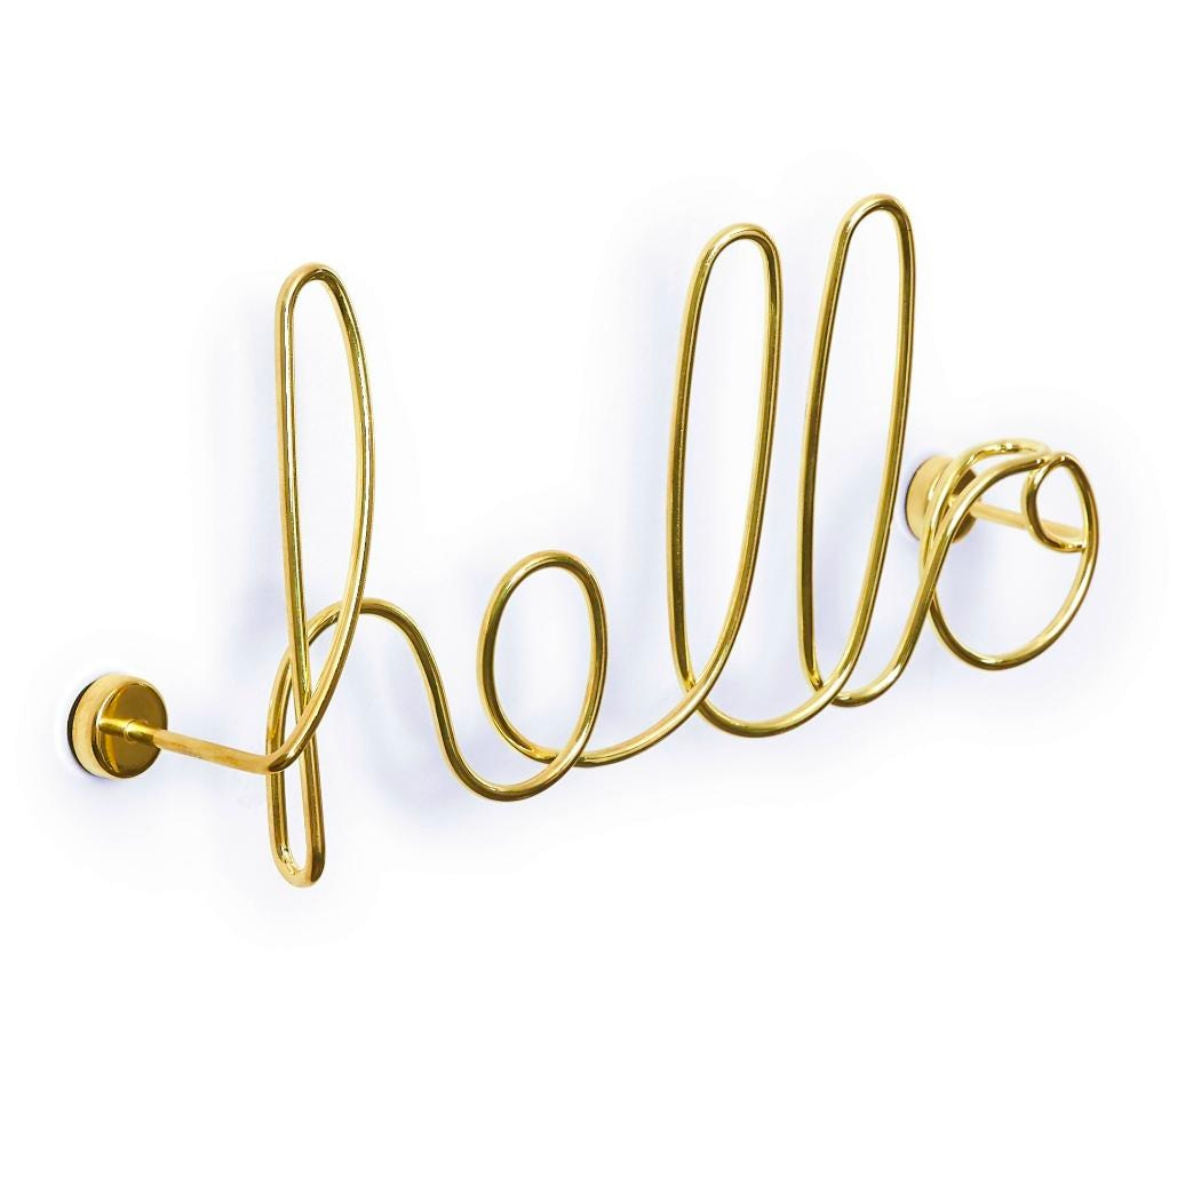 Umbra Wired Hello wall hanger